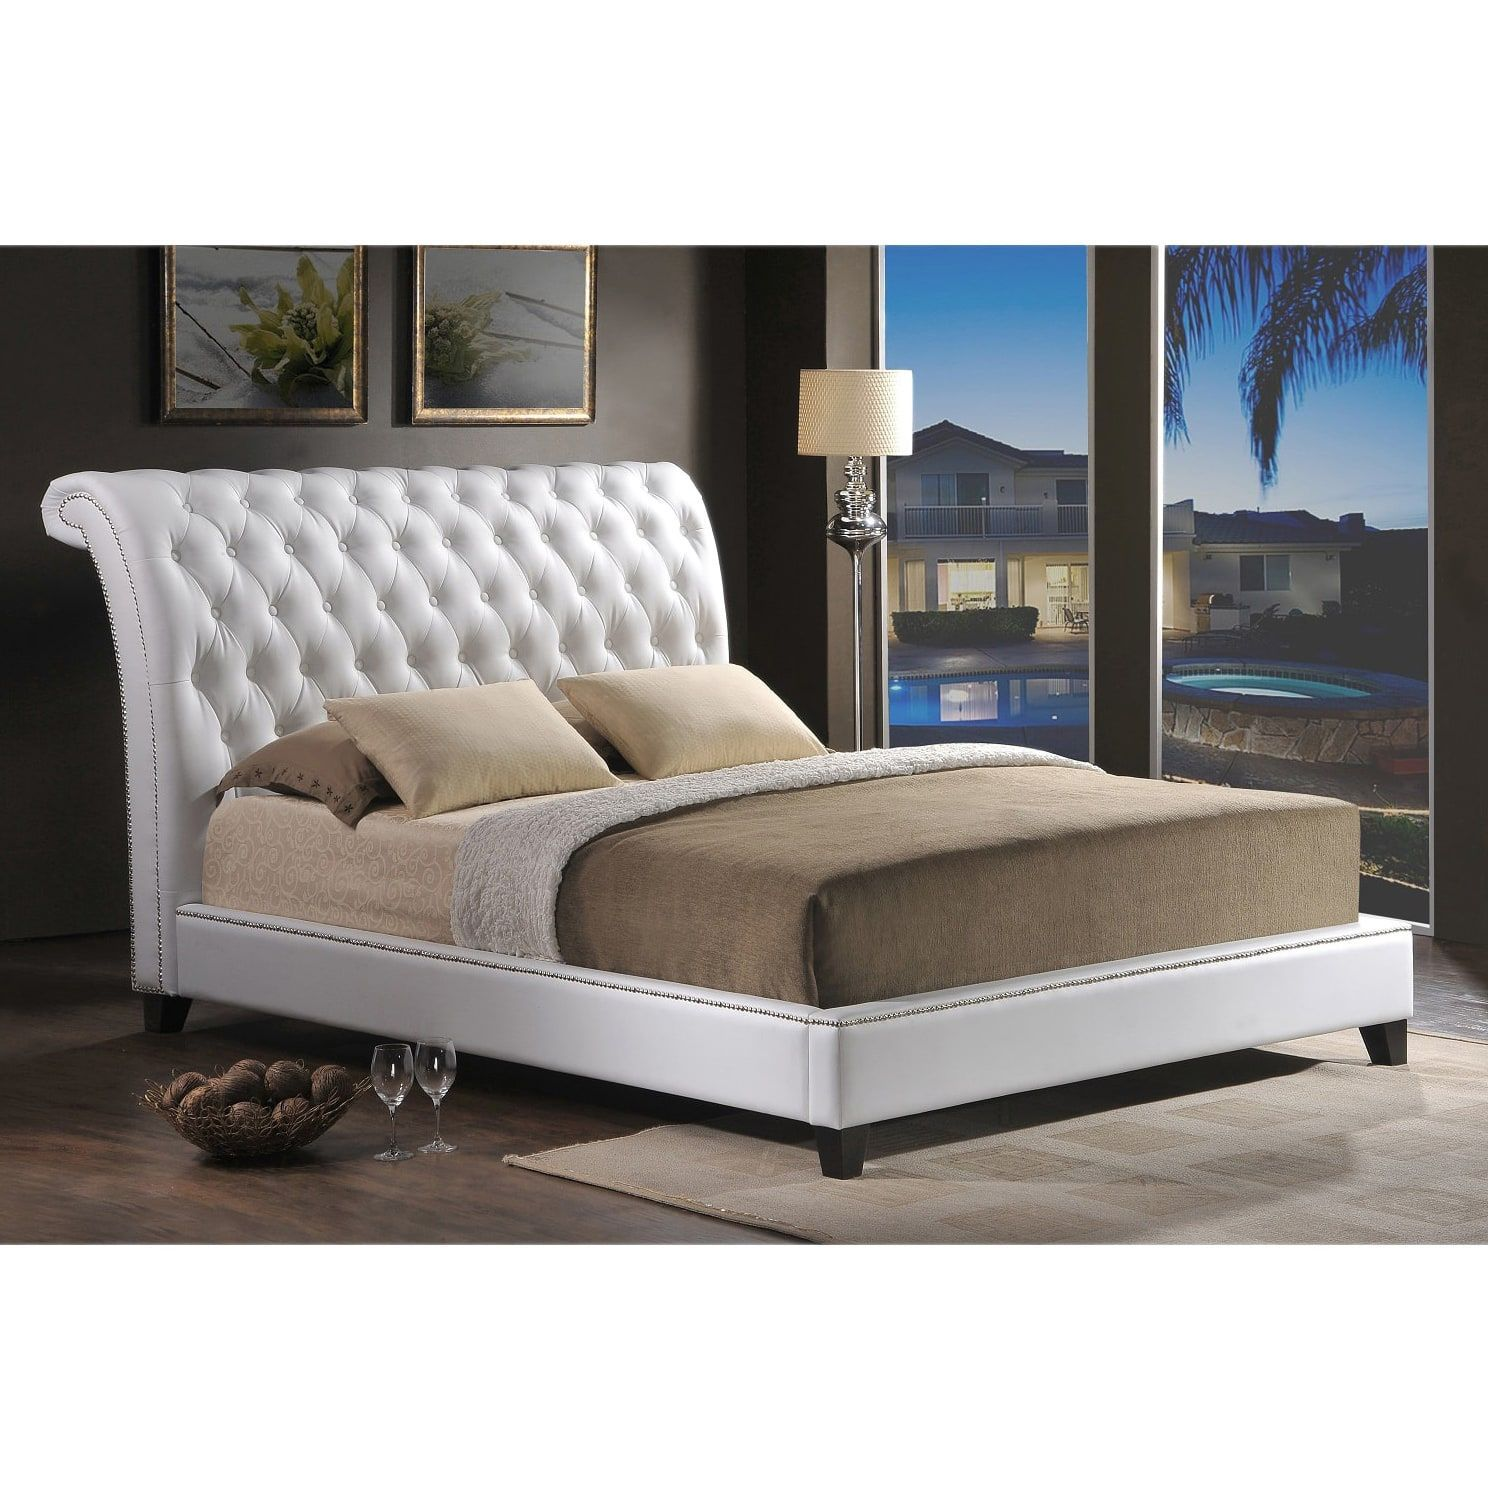 Baxton Studio Jazmin Tufted Modern Bed with Upholstered Headboard ...